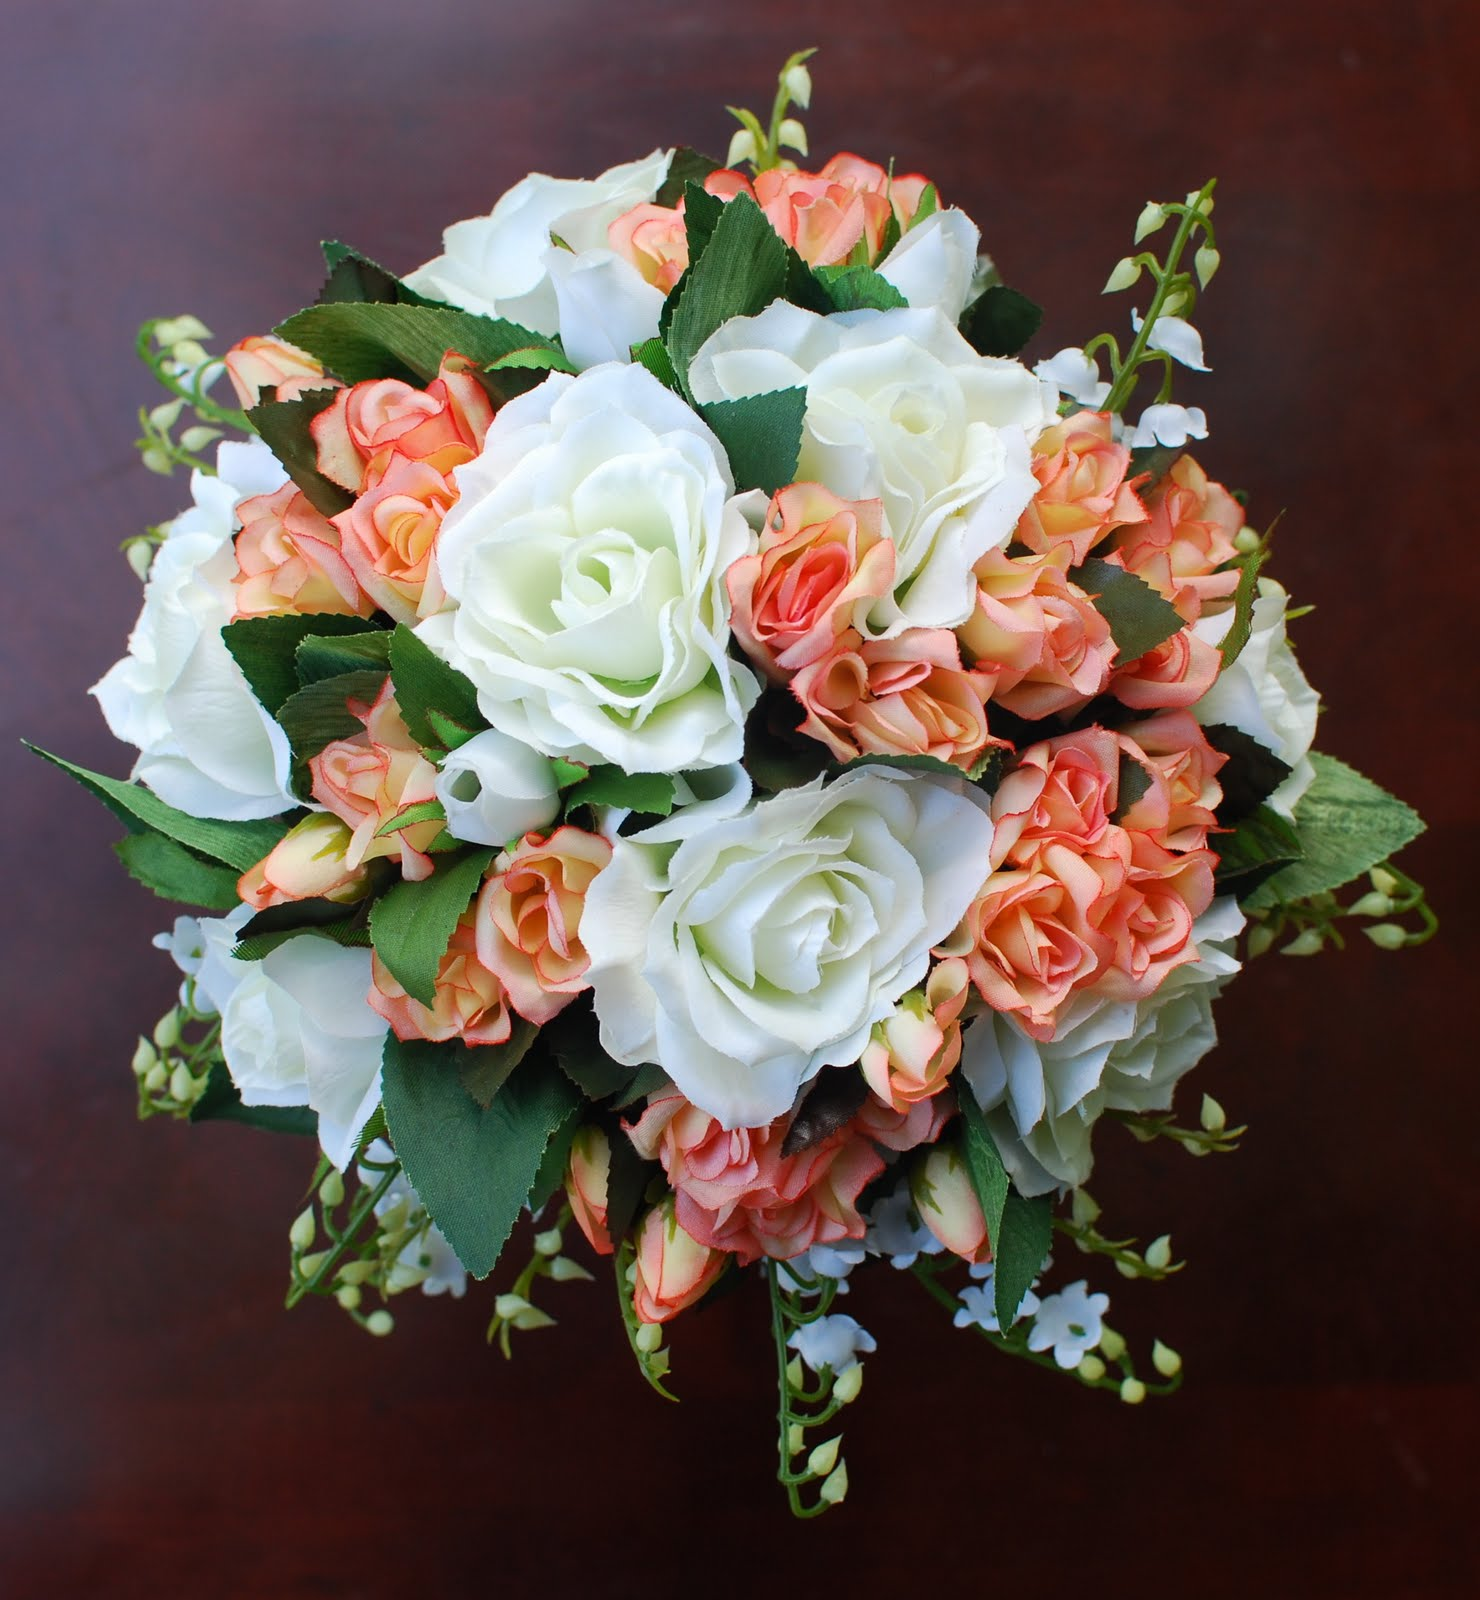 Making A Wedding Bouquet With Silk Flowers: Silva Salazar Floral Productions: Silk Wedding Bouquets